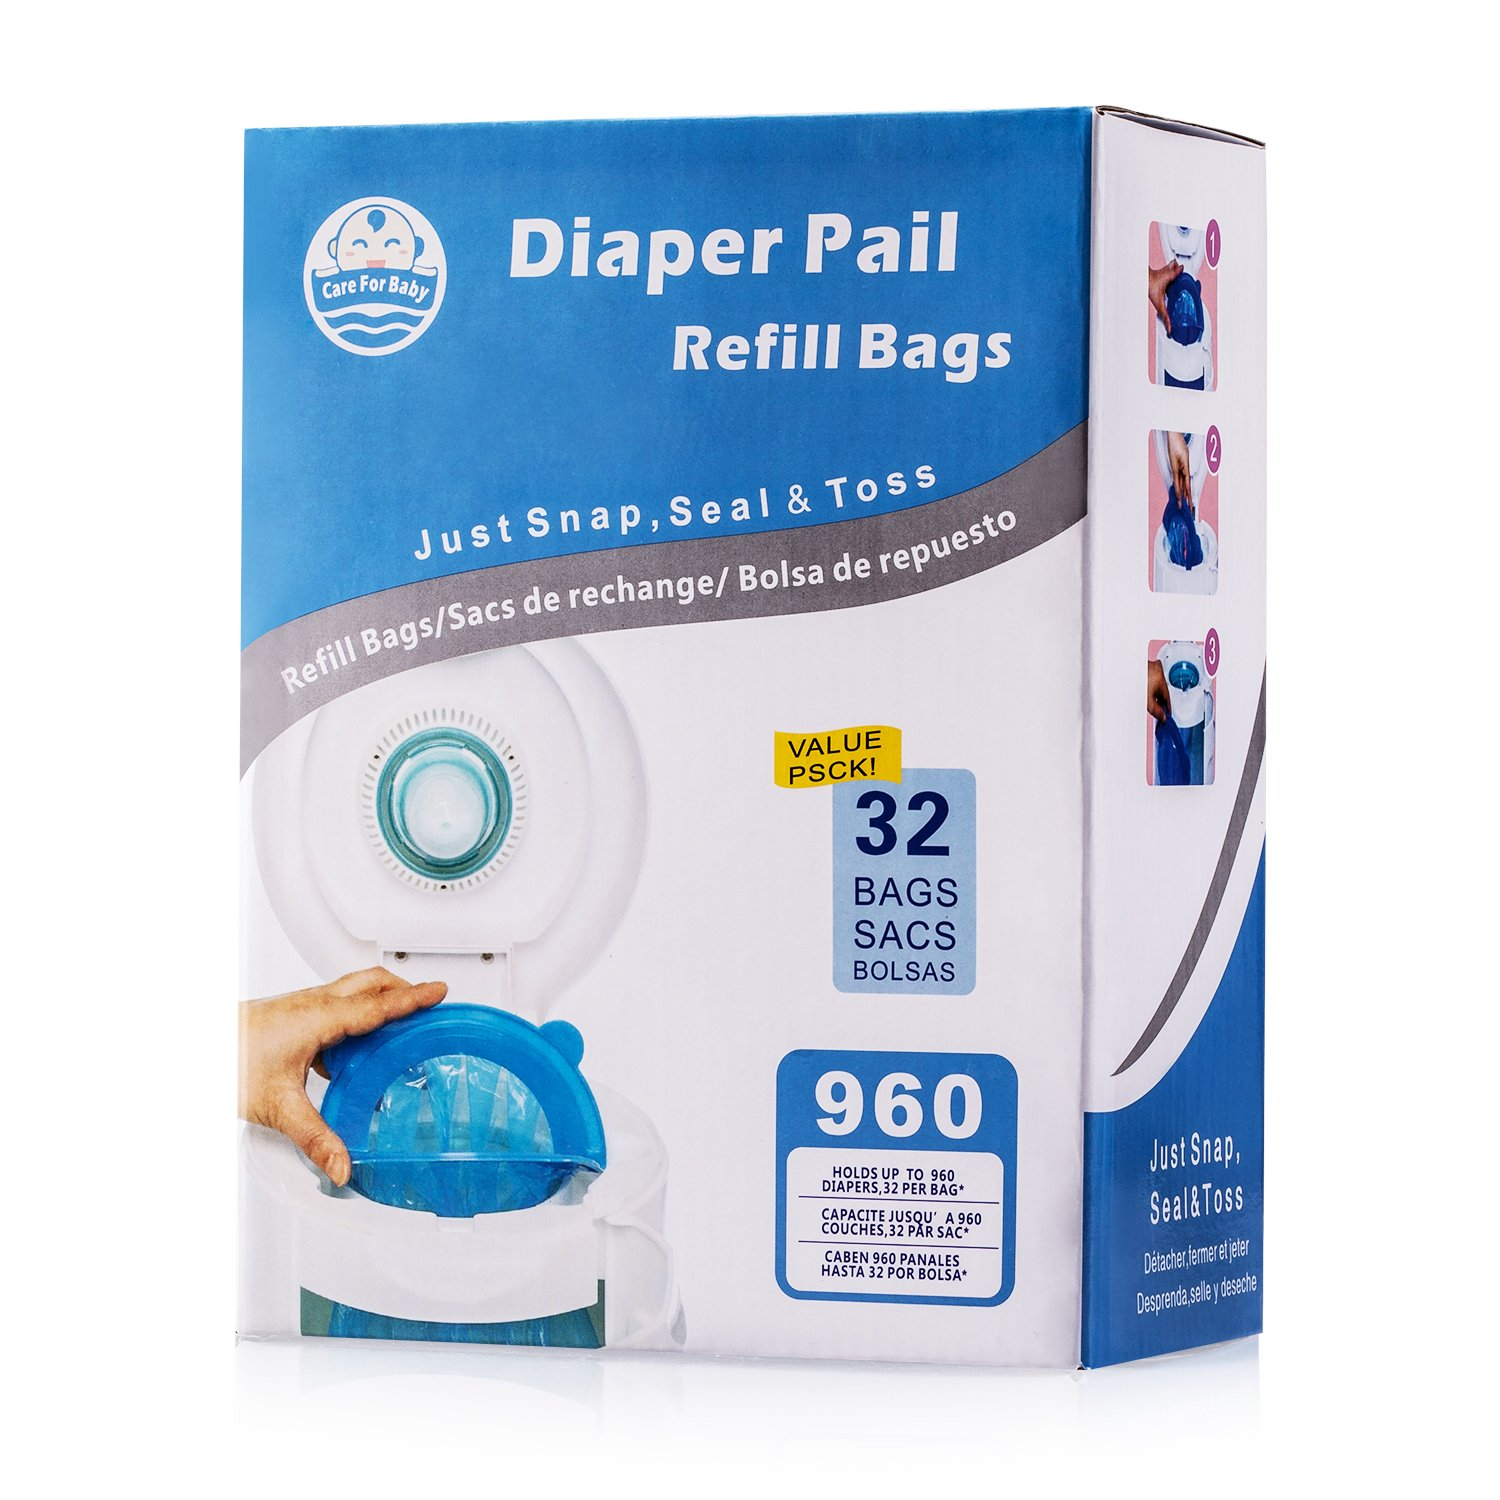 Careforbaby Diaper Pail Refill Bags (960 Counts) Fully Compatible with Arm&Hammer Disposal System - 32 Bags by Careforbaby